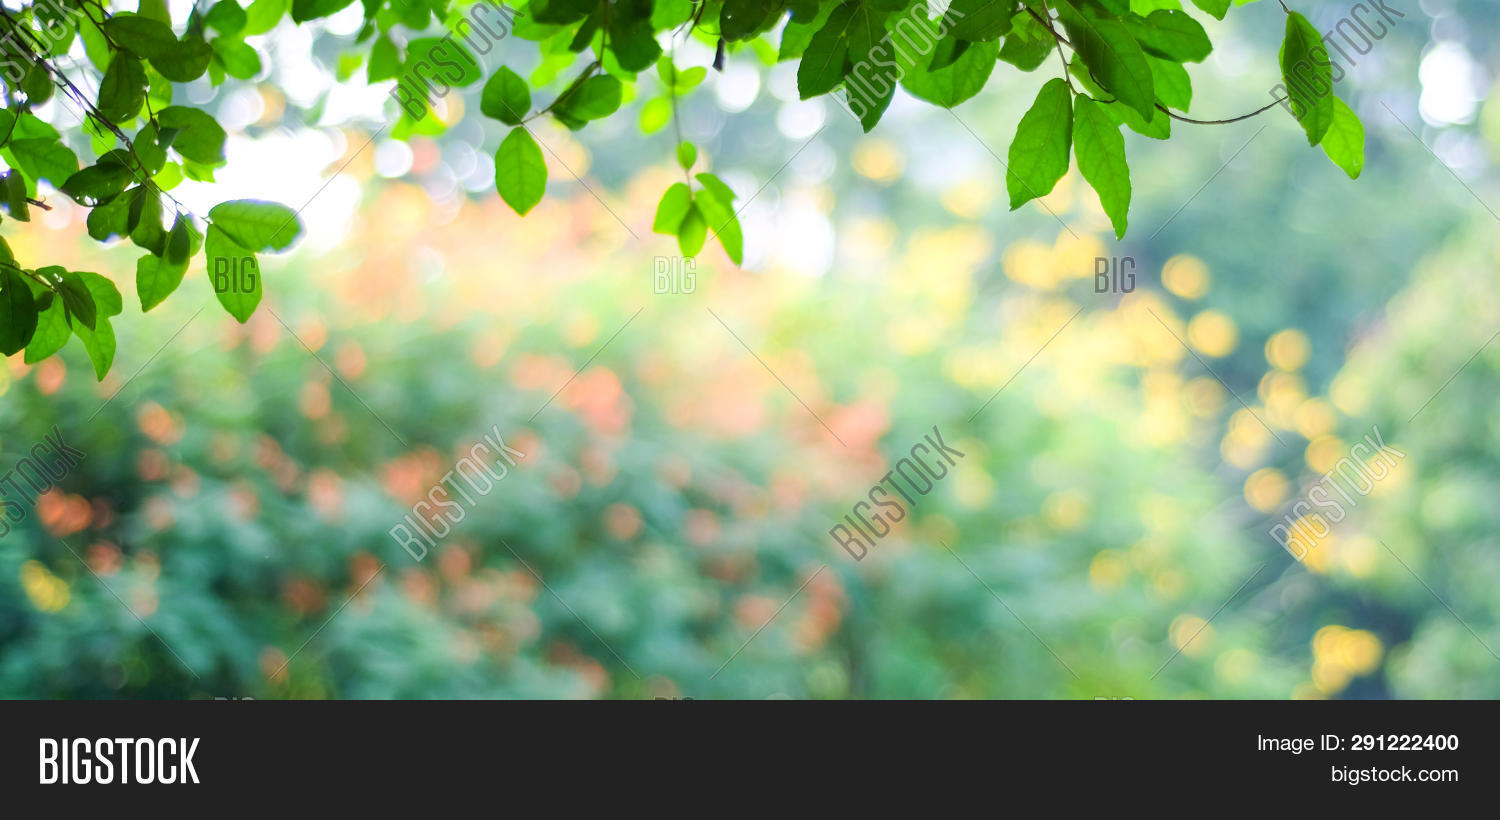 abstract,art,backdrop,background,banner,beautiful,blossom,blur,blurred,bokeh,branch,bright,color,concept,countryside,cover,day,design,eco,ecology,environment,field,flower,foliage,forest,frame,fresh,garden,green,growth,landscape,leaf,light,lush,nature,outdoors,park,plant,poster,relaxation,season,space,spring,summer,texture,tranquility,tree,vacation,wallpaper